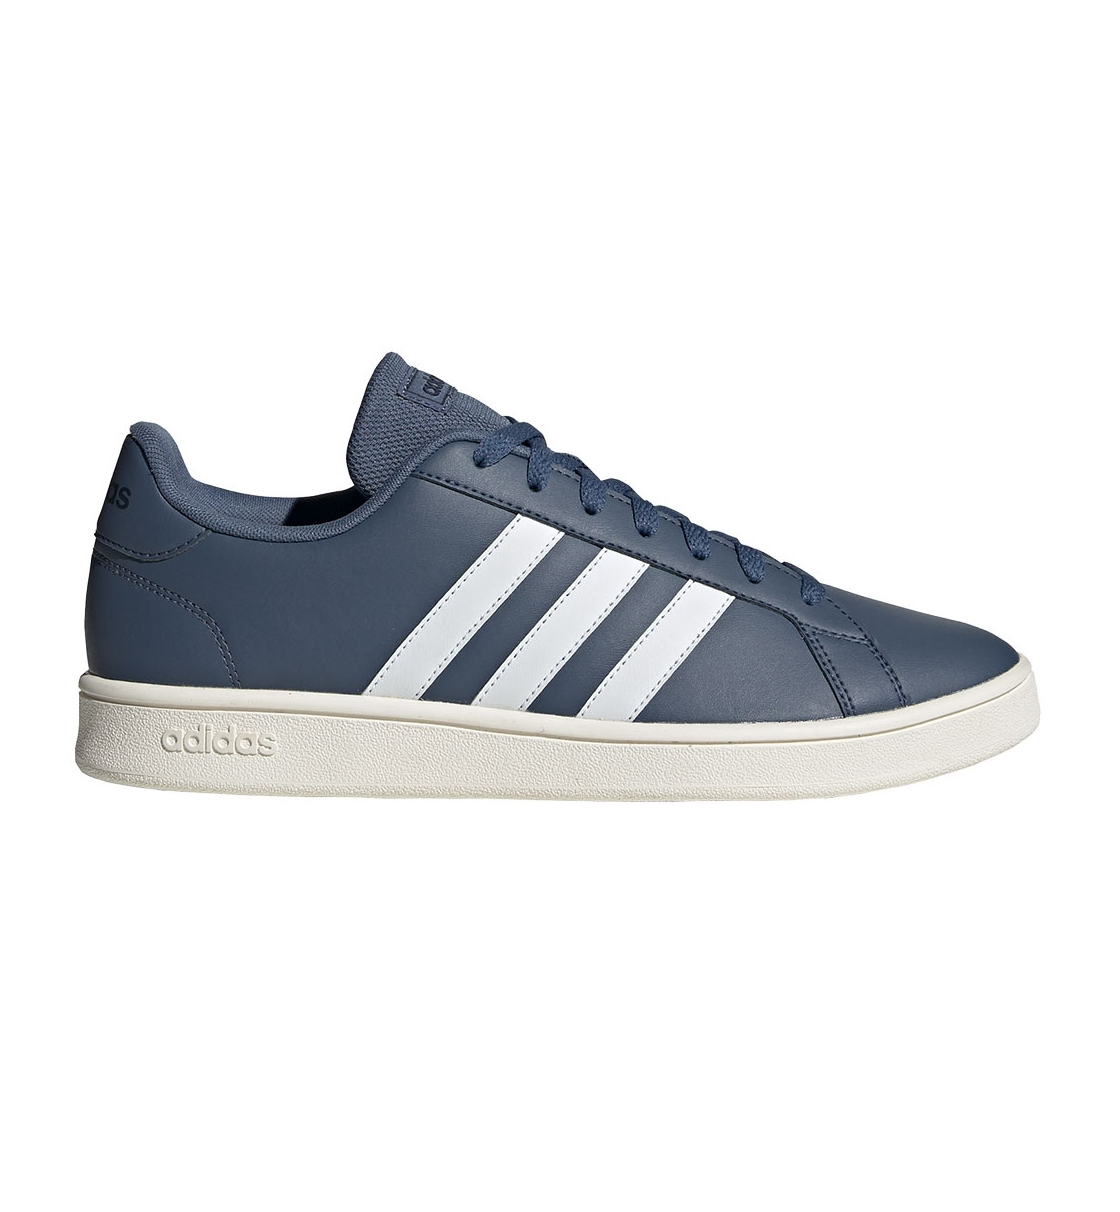 adidas Ανδρικό Παπούτσι Μόδας Ss20 Grand Court Base EE7908